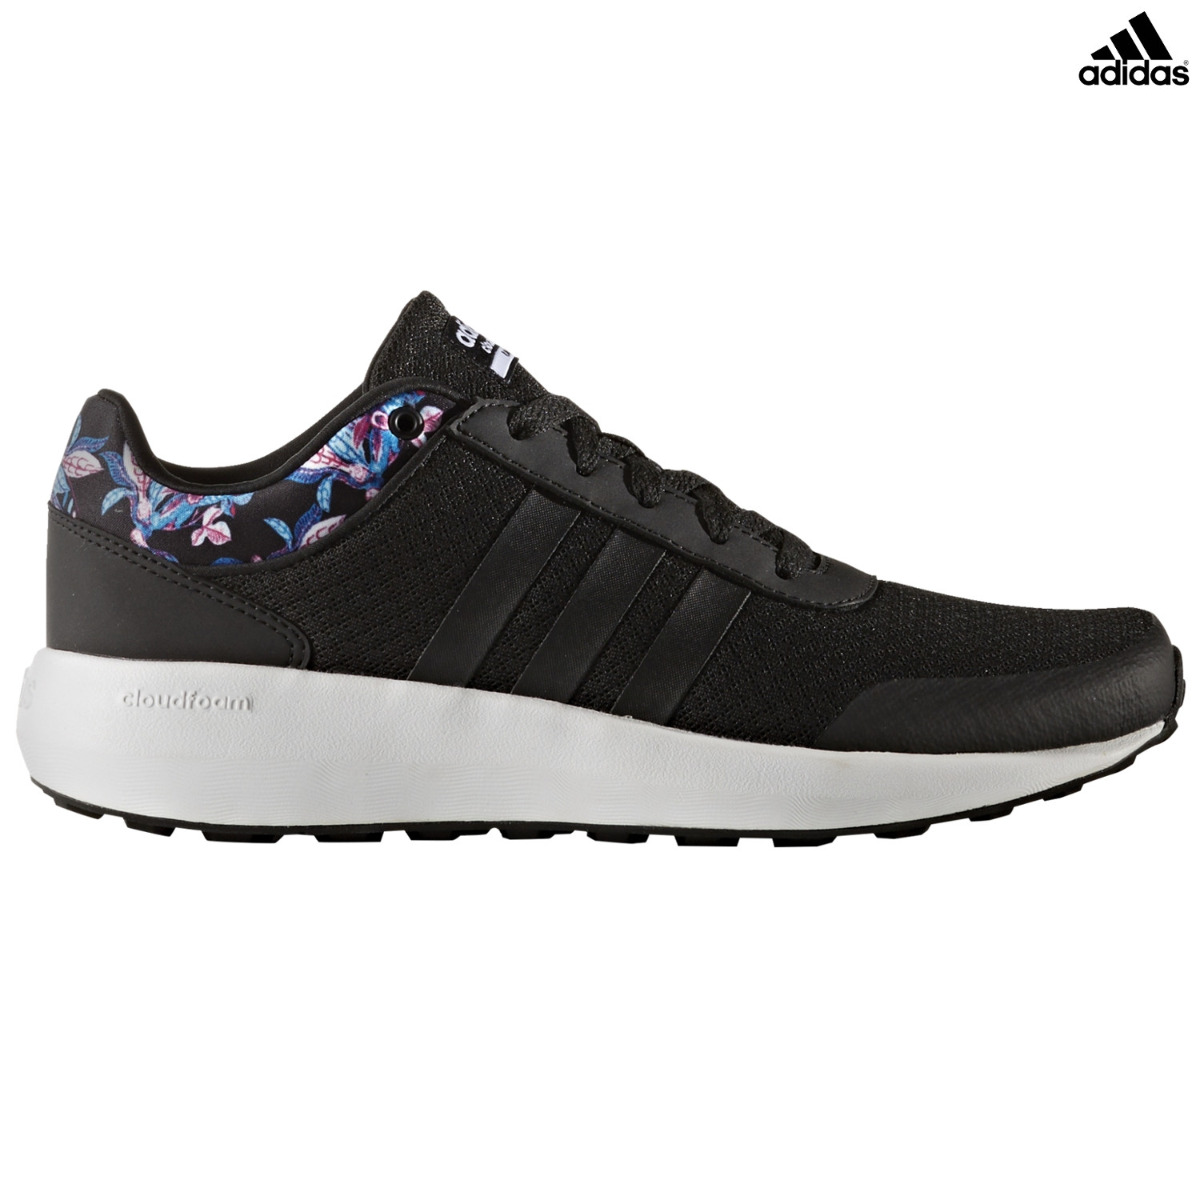 adidas cloudfoam race damen